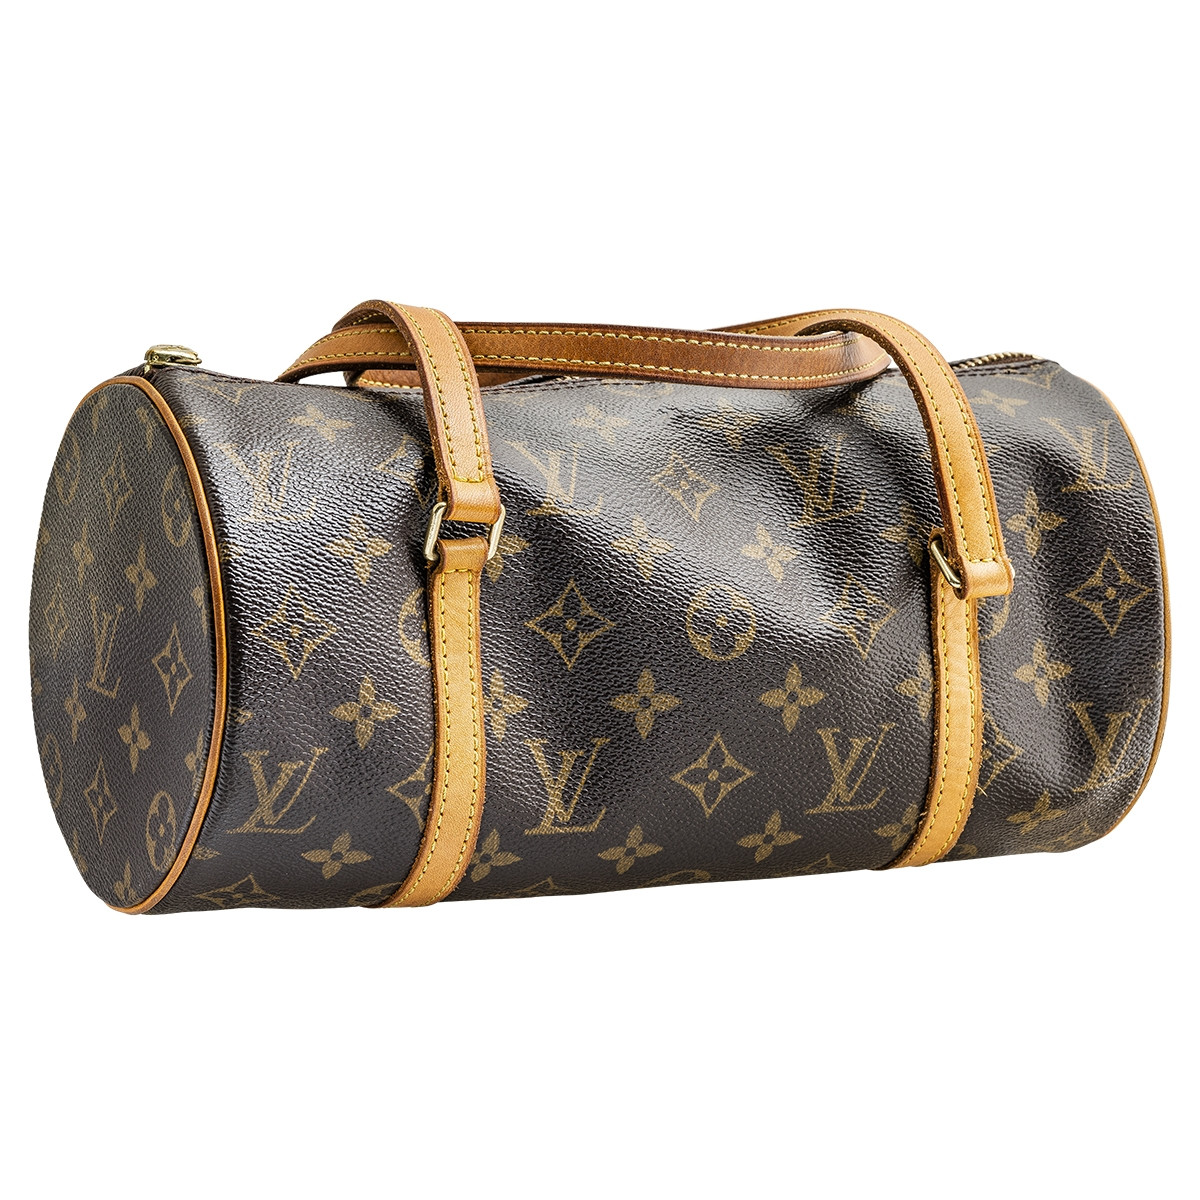 Vintage Louis Vuitton Monogram Papillon Shoulder Bag